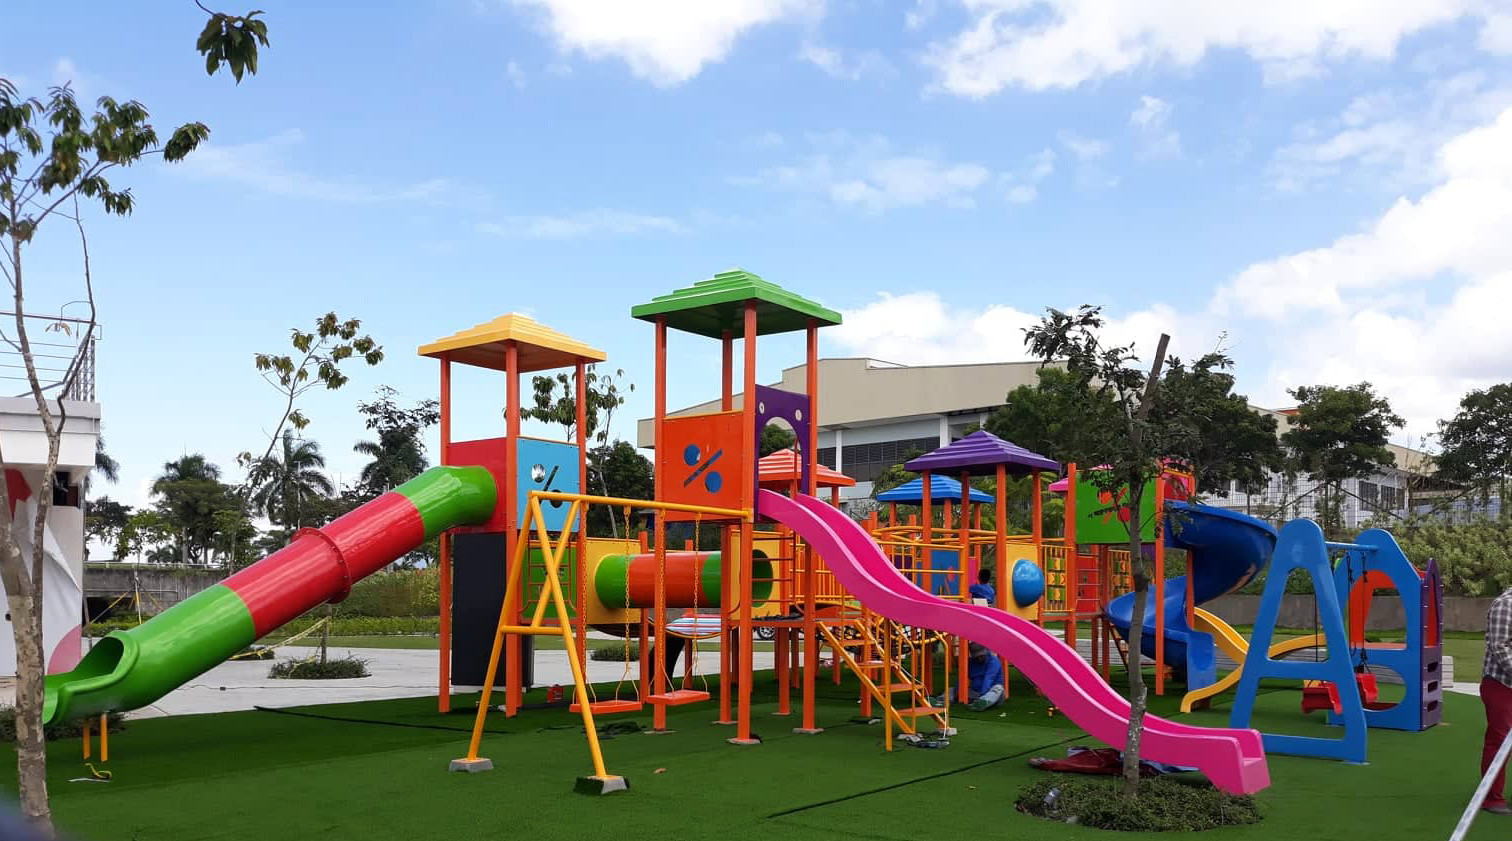 Customized Play Equipment  -Long Wave Slide - Tube Slide - Crawl Tube - Spiral Slide - Panel - Flooring  - Stairs with steel railing - 2 seater swing set - Roof